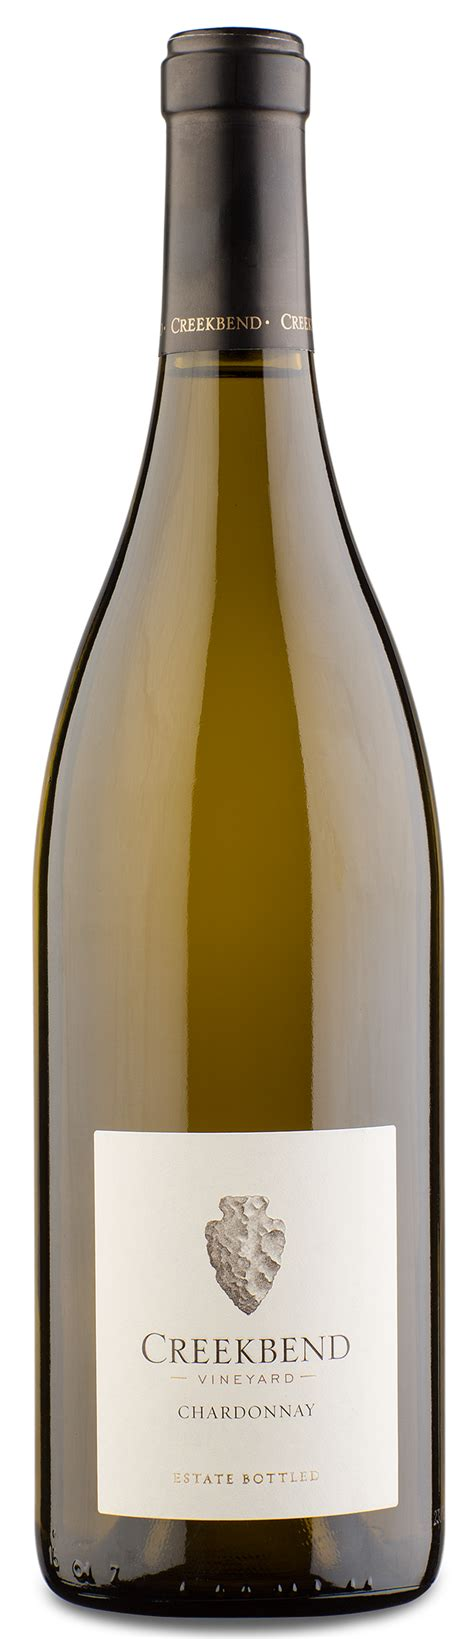 Club Chardonnay Going Begging by Oliver Pinot Grigio A Crisp White Flight Series